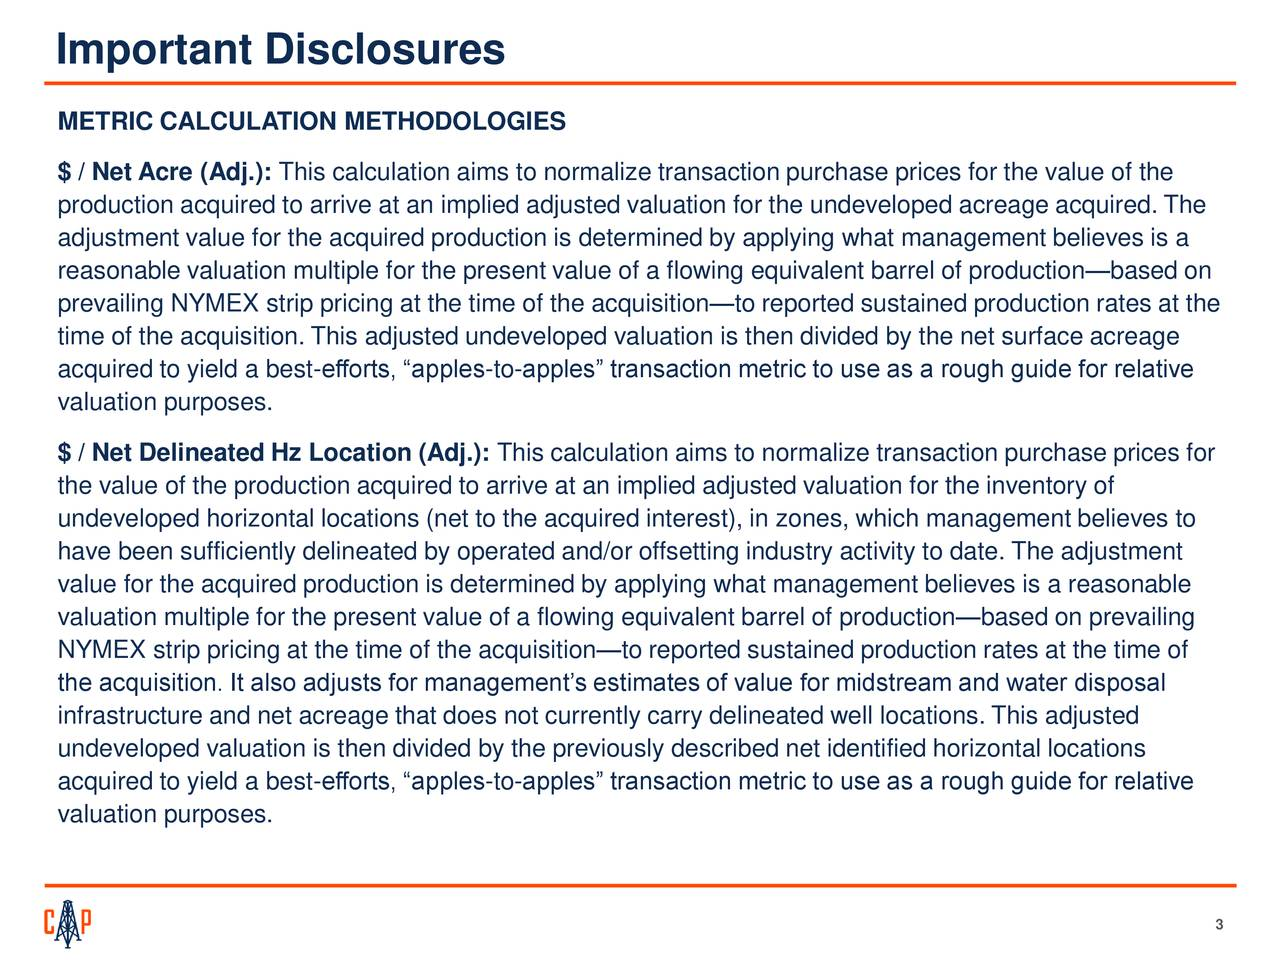 """METRIC CALCULATION METHODOLOGIES $ / Net Acre (Adj.): This calculation aims to normalize transaction purchase prices for the value of the production acquired to arrive at an implied adjusted valuation for the undeveloped acreage acquired. The adjustment value for the acquired production is determined by applying what management believes is a reasonable valuation multiple for the present value of a flowing equivalent barrel of production—based on prevailing NYMEX strip pricing at the time of the acquisition—to reported sustained production rates at the time of the acquisition. This adjusted undeveloped valuation is then divided by the net surface acreage acquired to yield a best-efforts, """"apples-to-apples"""" transaction metric to use as a rough guide for relative valuation purposes. $ / Net Delineated Hz Location (Adj.): This calculation aims to normalize transaction purchase prices for the value of the production acquired to arrive at an implied adjusted valuation for the inventory of undeveloped horizontal locations (net to the acquired interest), in zones, which management believes to have been sufficiently delineated by operated and/or offsetting industry activity to date. The adjustment value for the acquired production is determined by applying what management believes is a reasonable valuation multiple for the present value of a flowing equivalent barrel of production—based on prevailing NYMEX strip pricing at the time of the acquisition—to reported sustained production rates at the time of the acquisition. It also adjusts for management's estimates of value for midstream and water disposal infrastructure and net acreage that does not currently carry delineated well locations. This adjusted undeveloped valuation is then divided by the previously described net identified horizontal locations acquired to yield a best-efforts, """"apples-to-apples"""" transaction metric to use as a rough guide for relative valuation purposes. 3"""